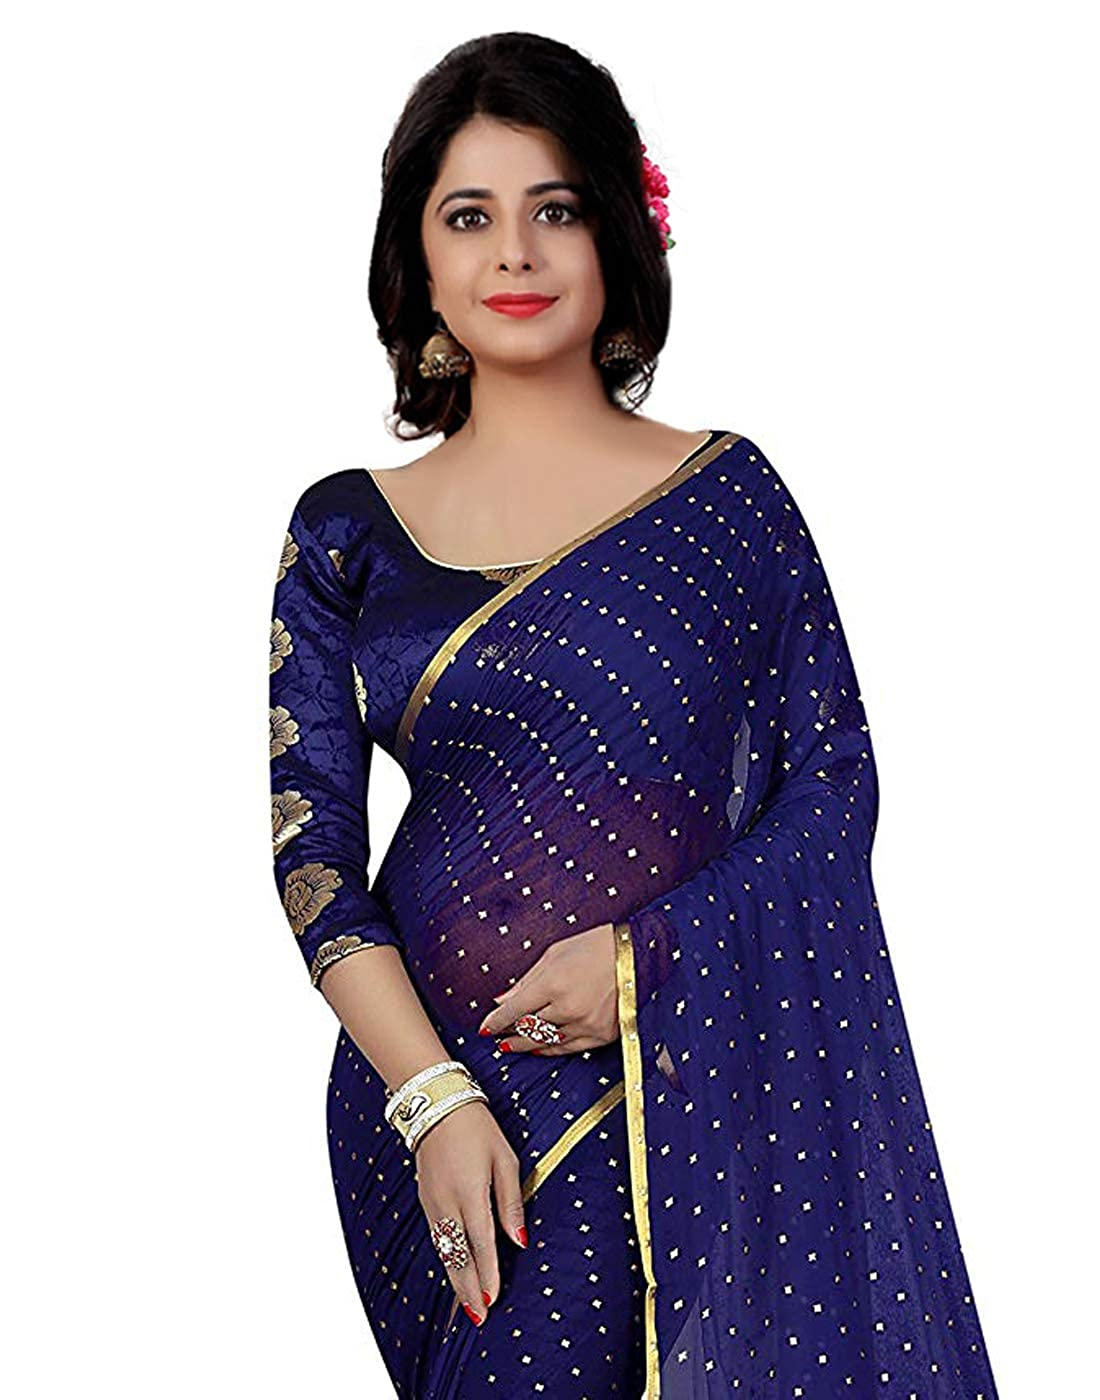 c93f423b10895 Vishnu Creations Chiffon Saree With Blouse Piece (1837 Navy Blue Blue Free  Size)  Amazon.in  Clothing   Accessories